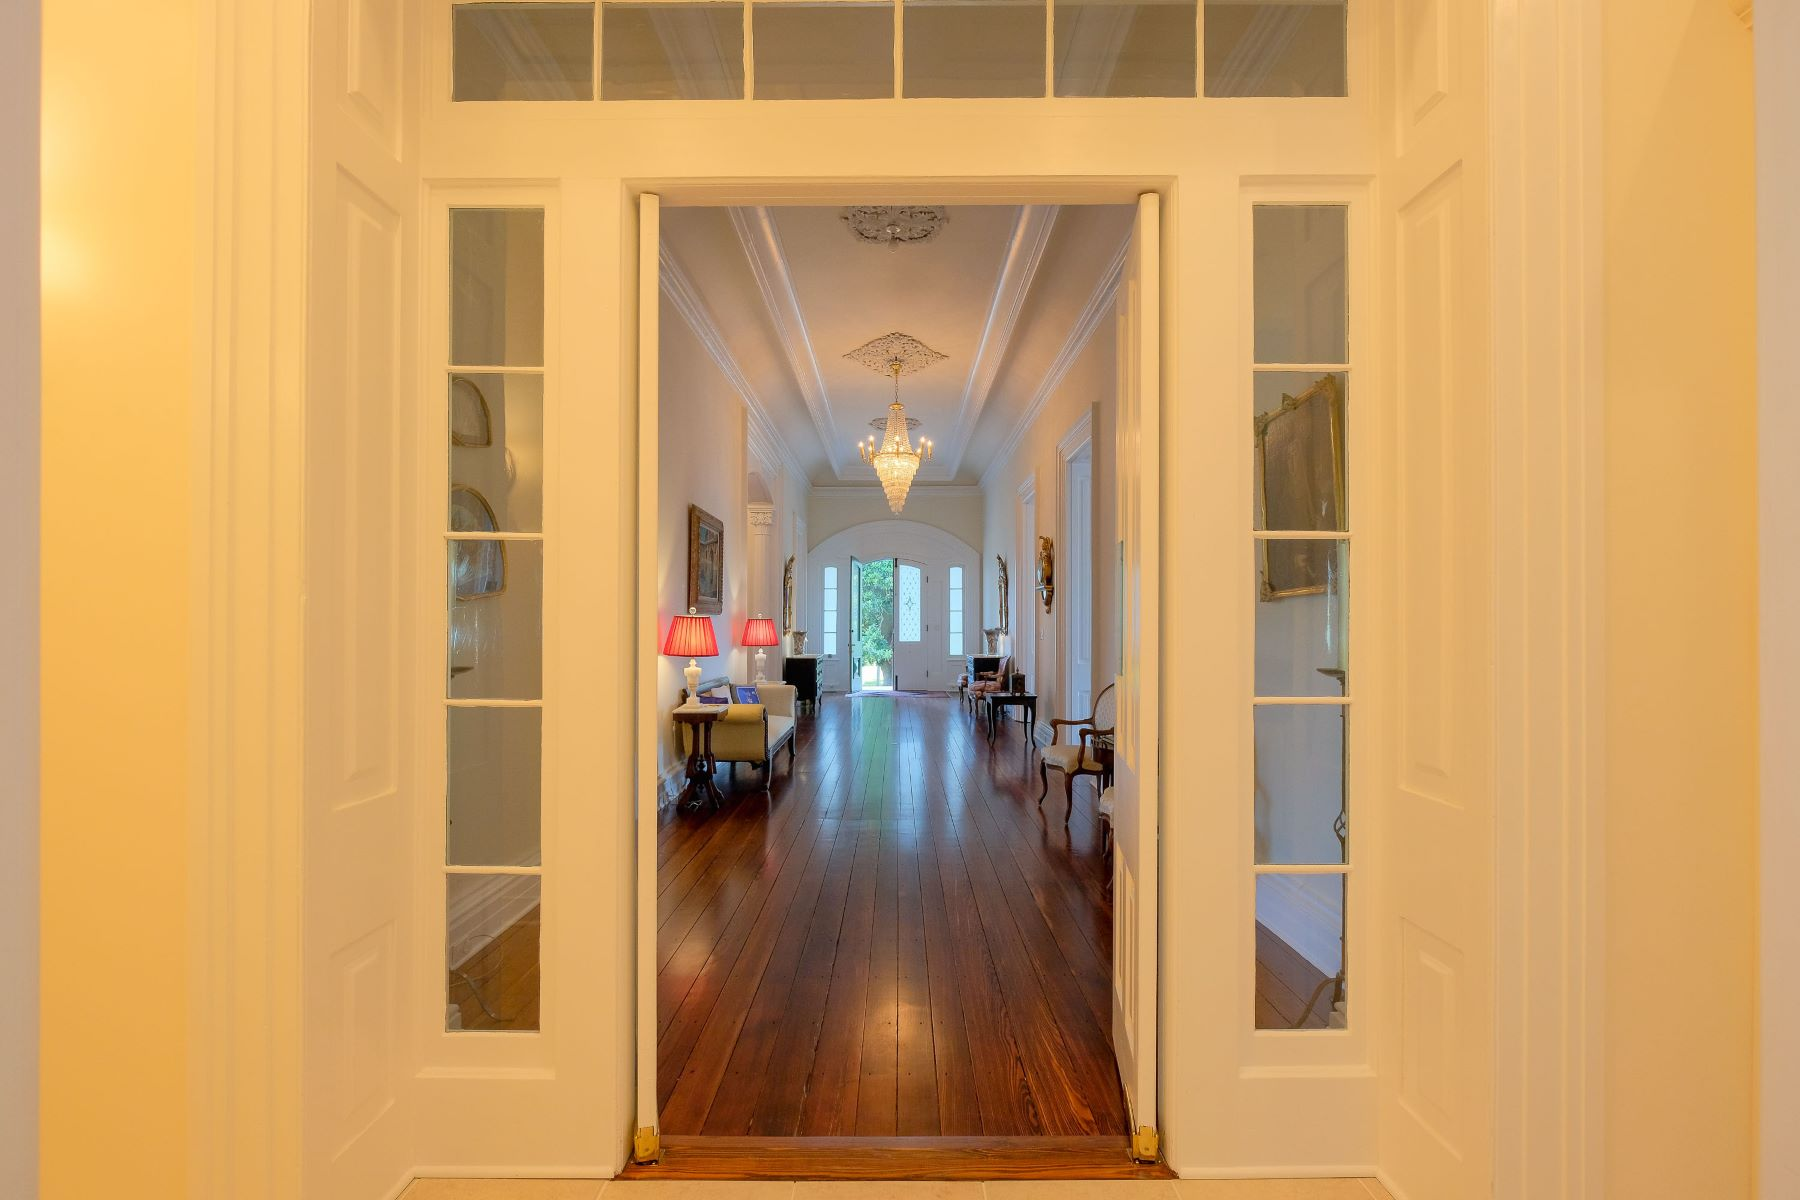 Additional photo for property listing at Wessington 120 W King Street Edenton, North Carolina 27932 United States